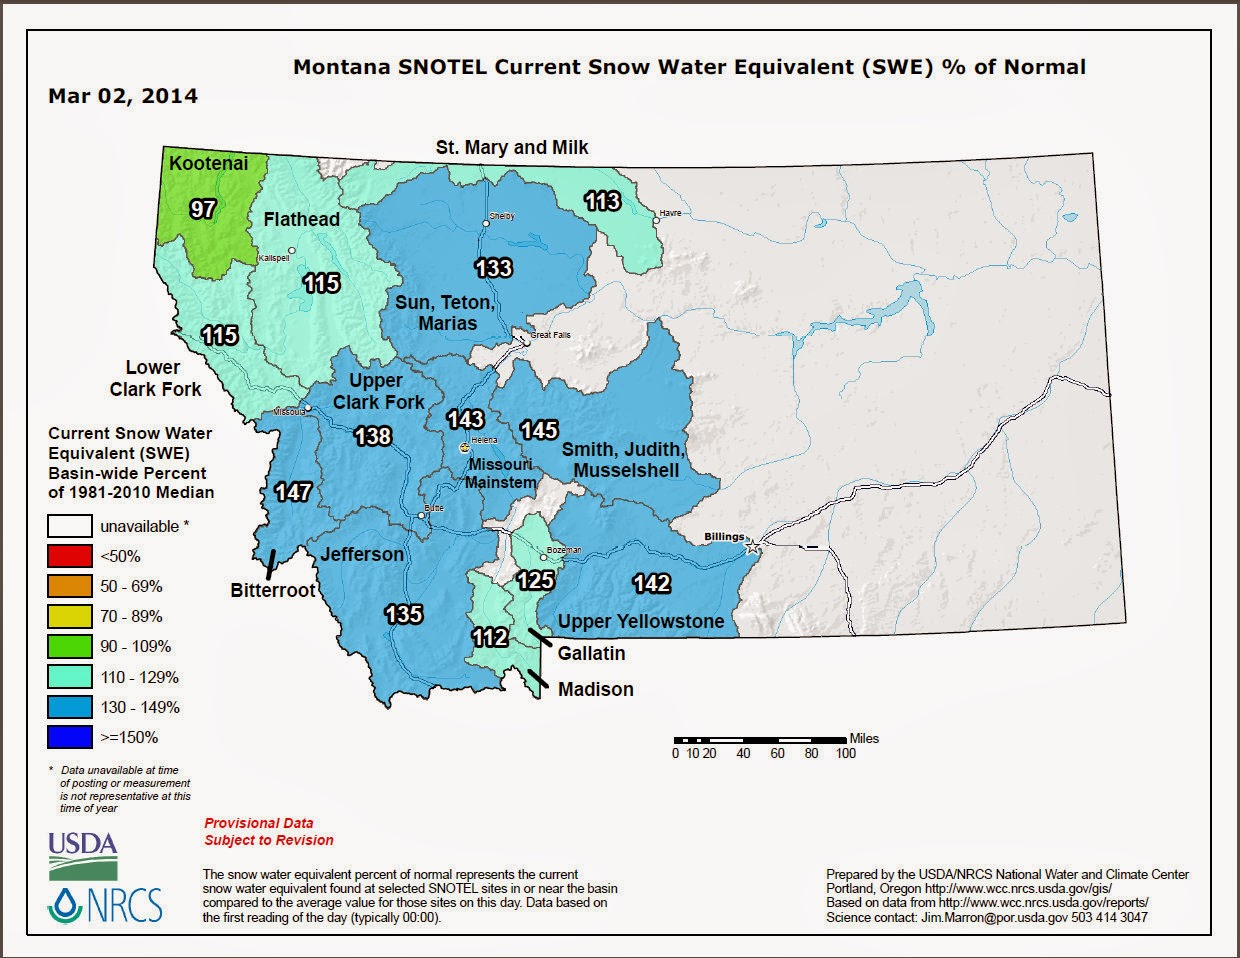 Bitterroot River Basin Snowpack at 147% of normal in March